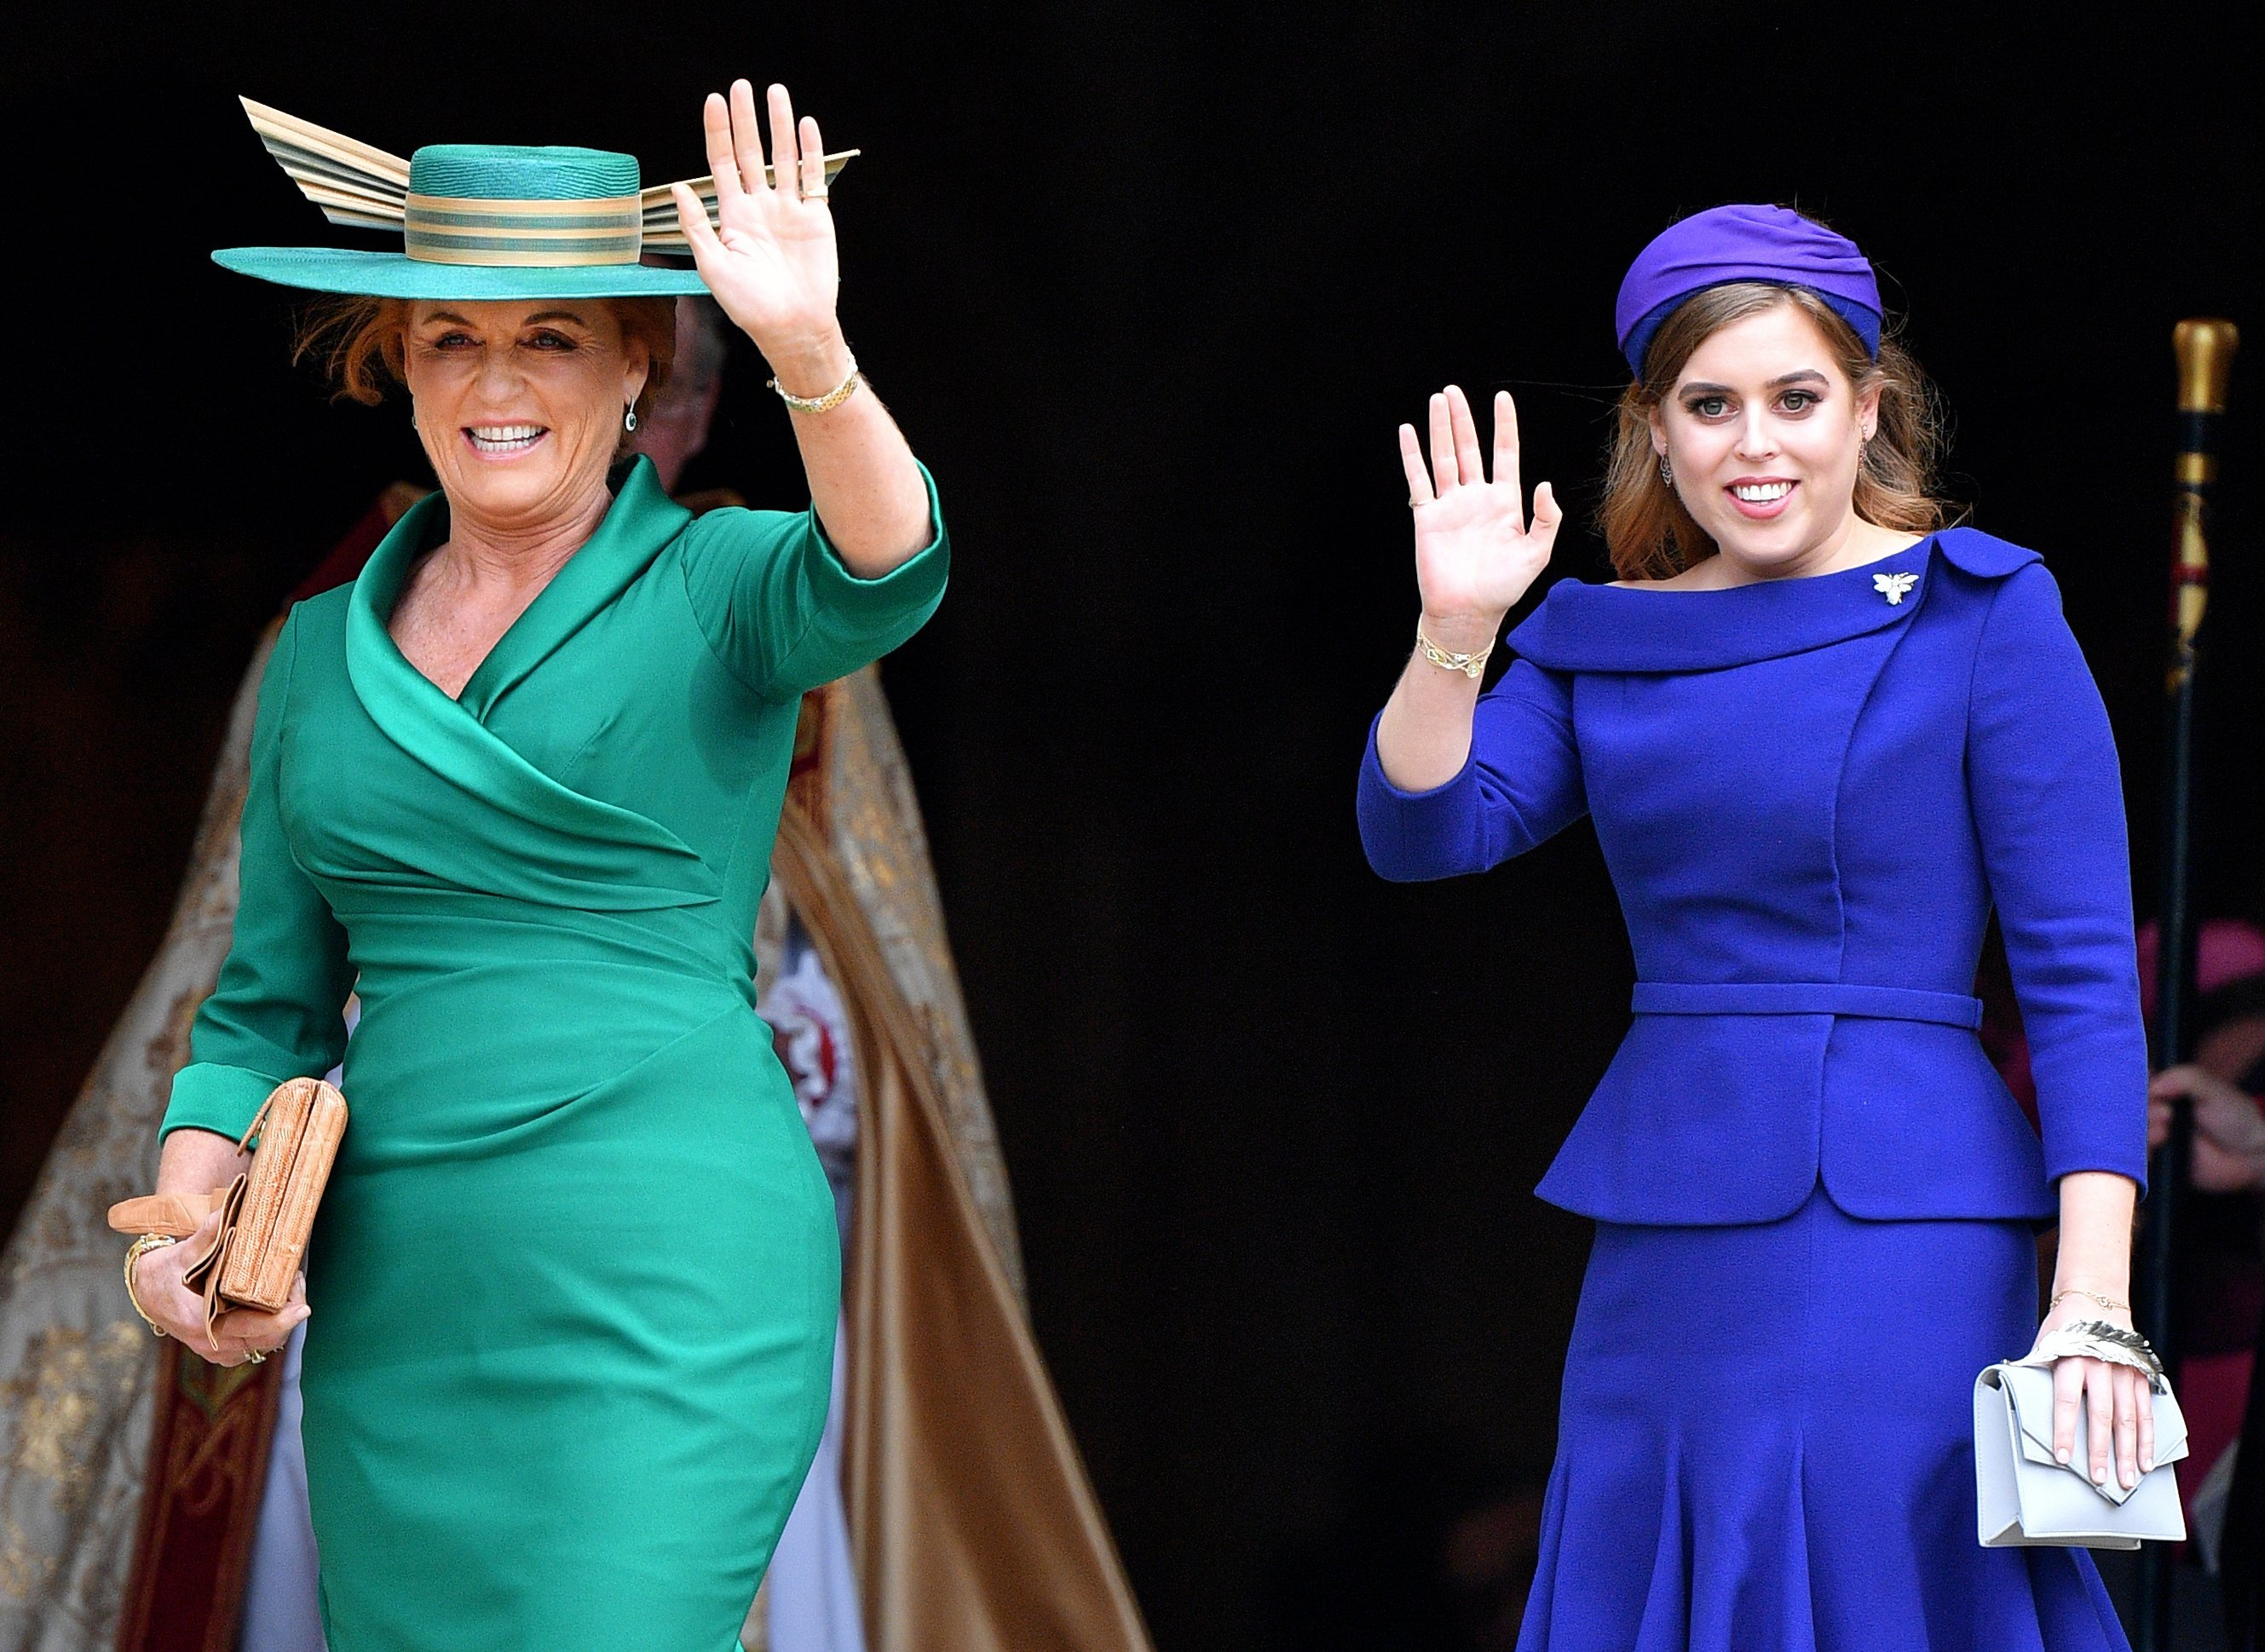 Sarah Ferguson and Princess Beatrice attend Princess Eugenie's wedding at St. George's Chapel in Windsor Castle in October 2018 | Photo: Getty Images